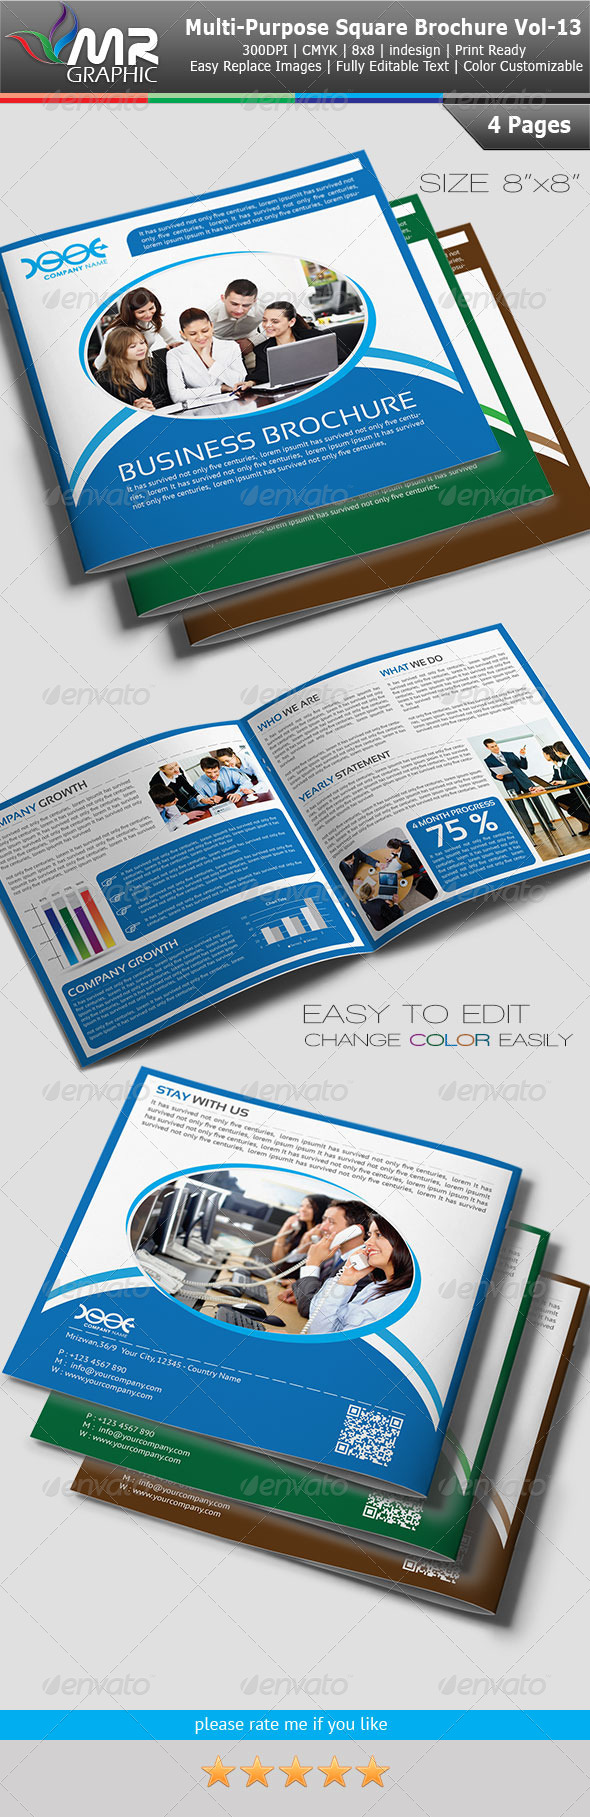 GraphicRiver Multipurpose Square Business Brochure Vol-13 4099641